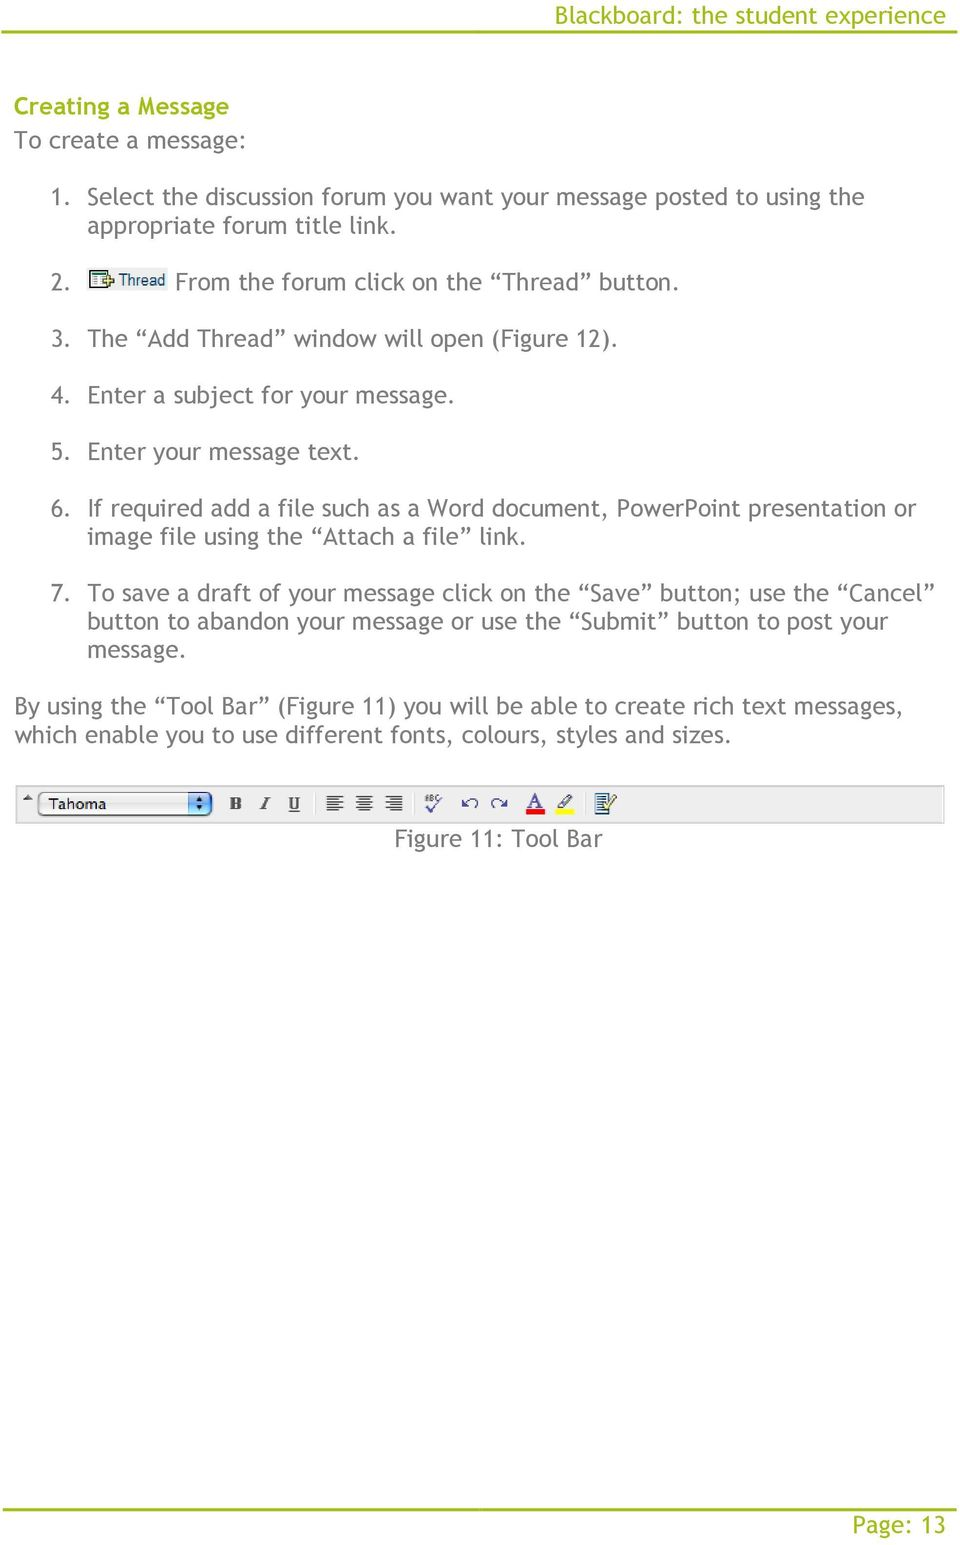 If required add a file such as a Word document, PowerPoint presentation or image file using the Attach a file link. 7.